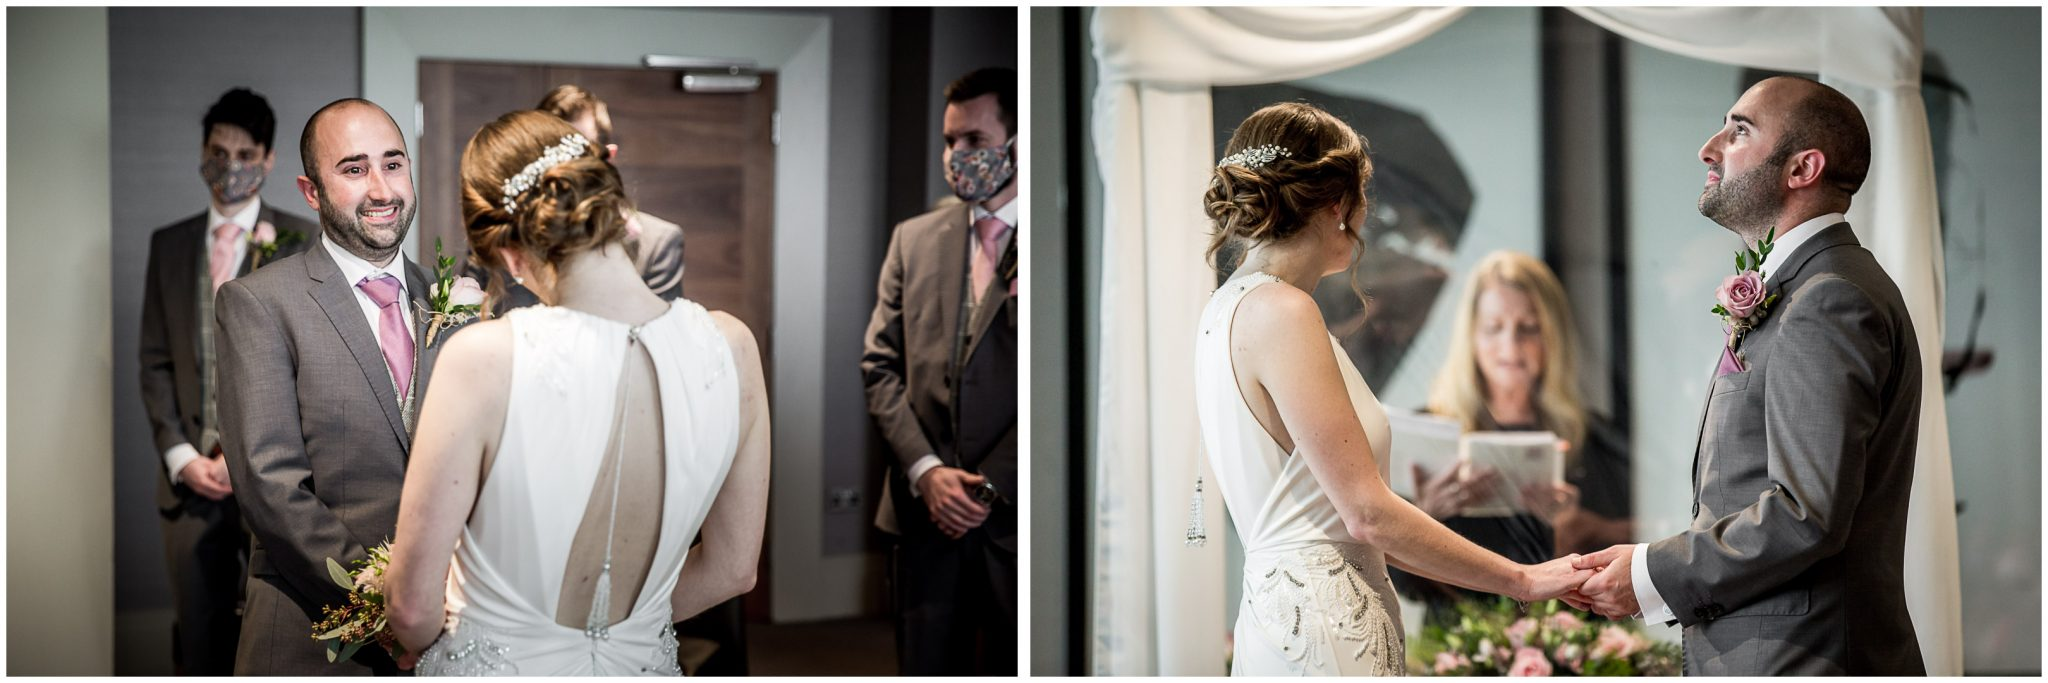 Bride and groom turn to face each other and smile at the start of the marriage ceremony